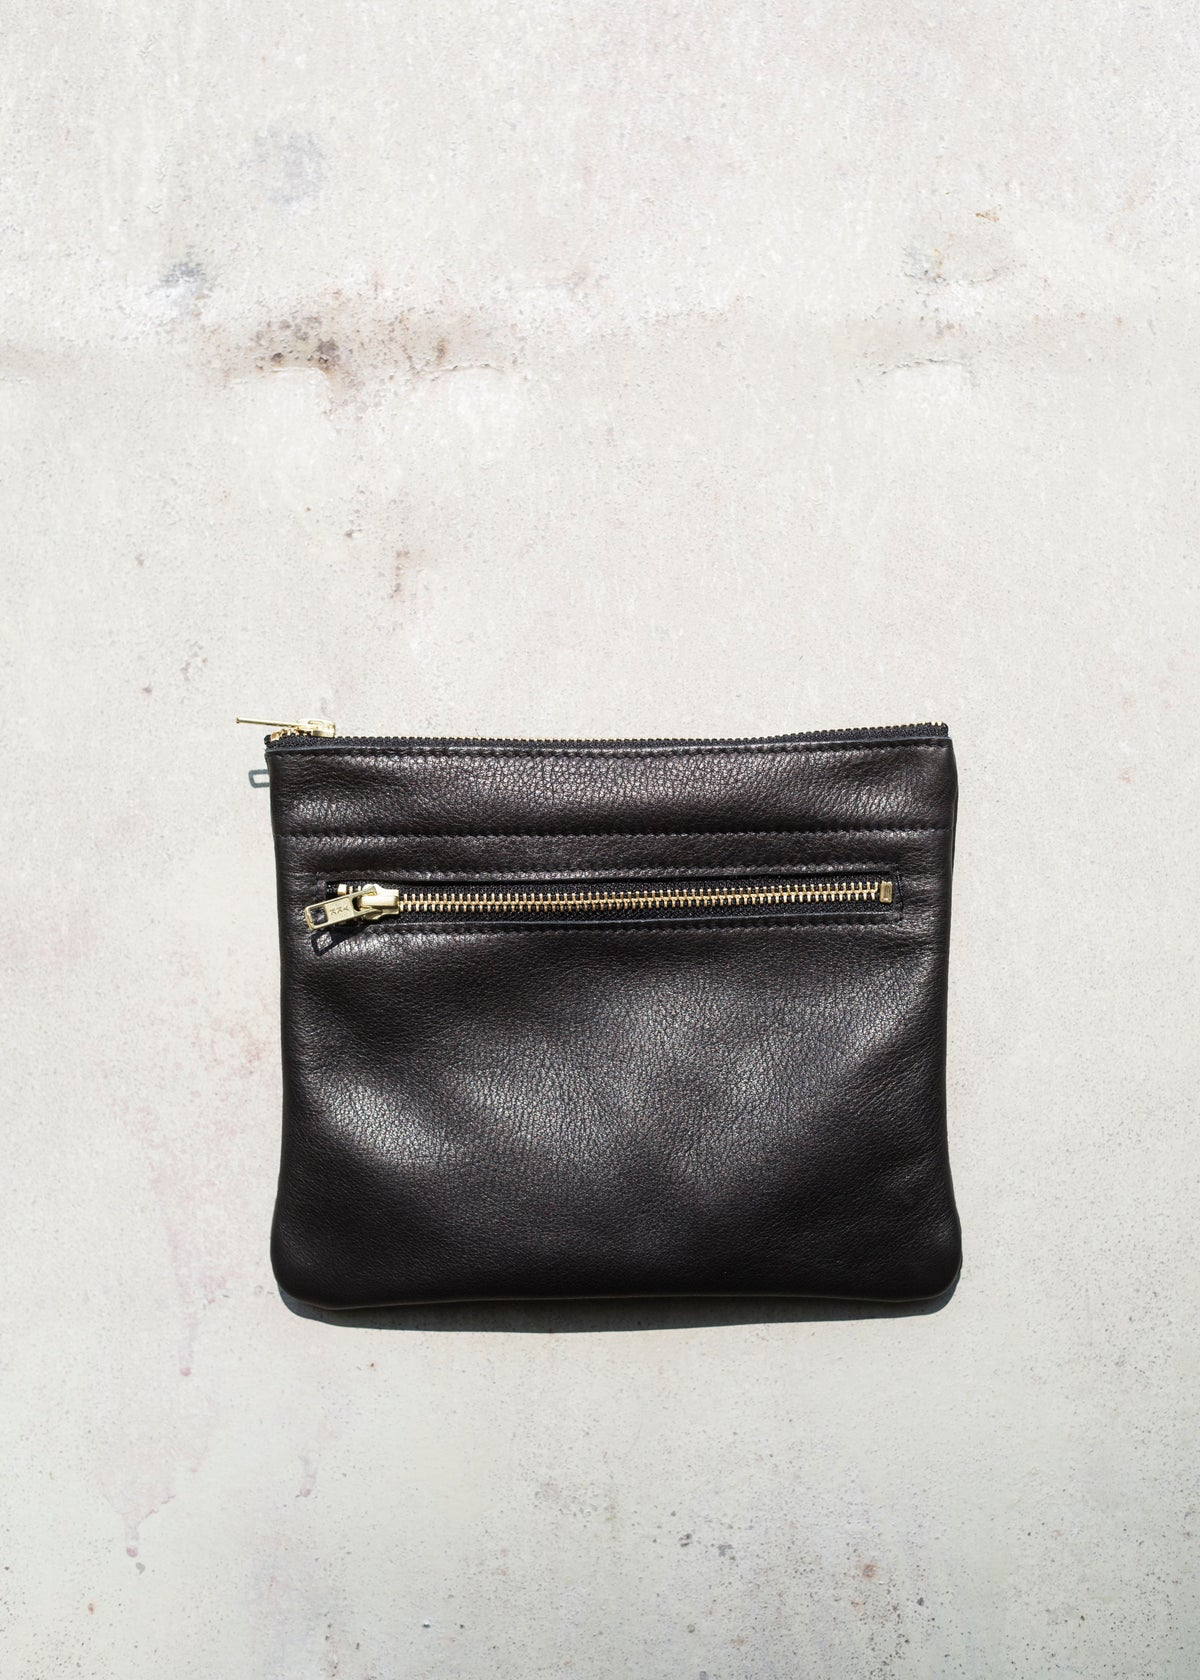 Image of Leather Clutch or travel pouch